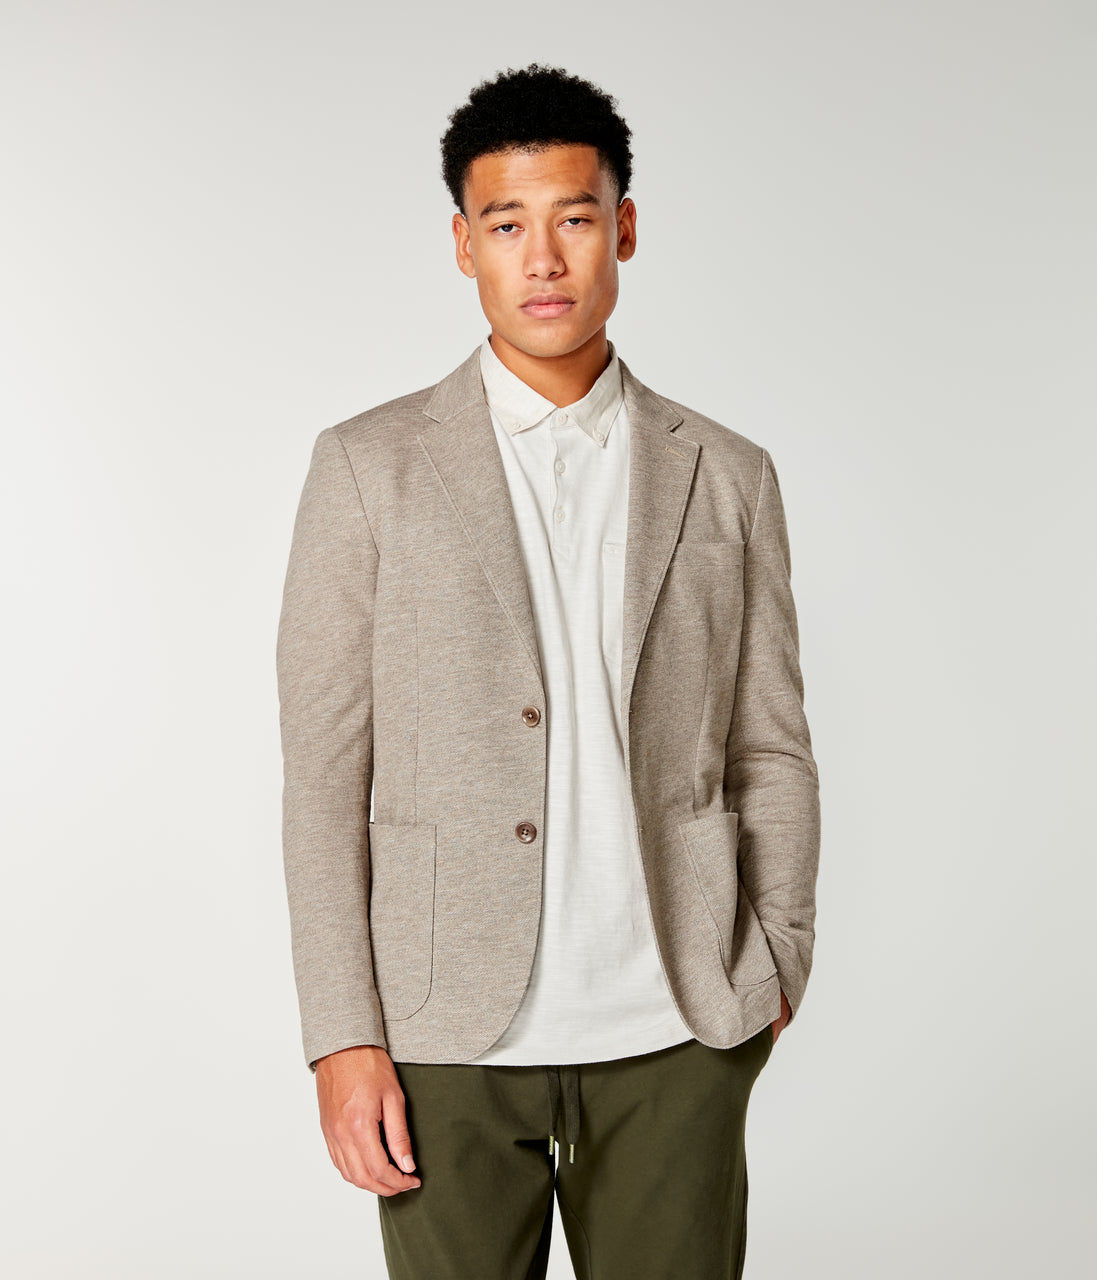 Twill Slub French Terry Soft Blazer - Terra Heather - Good Man Brand - Twill Slub French Terry Soft Blazer - Terra Heather